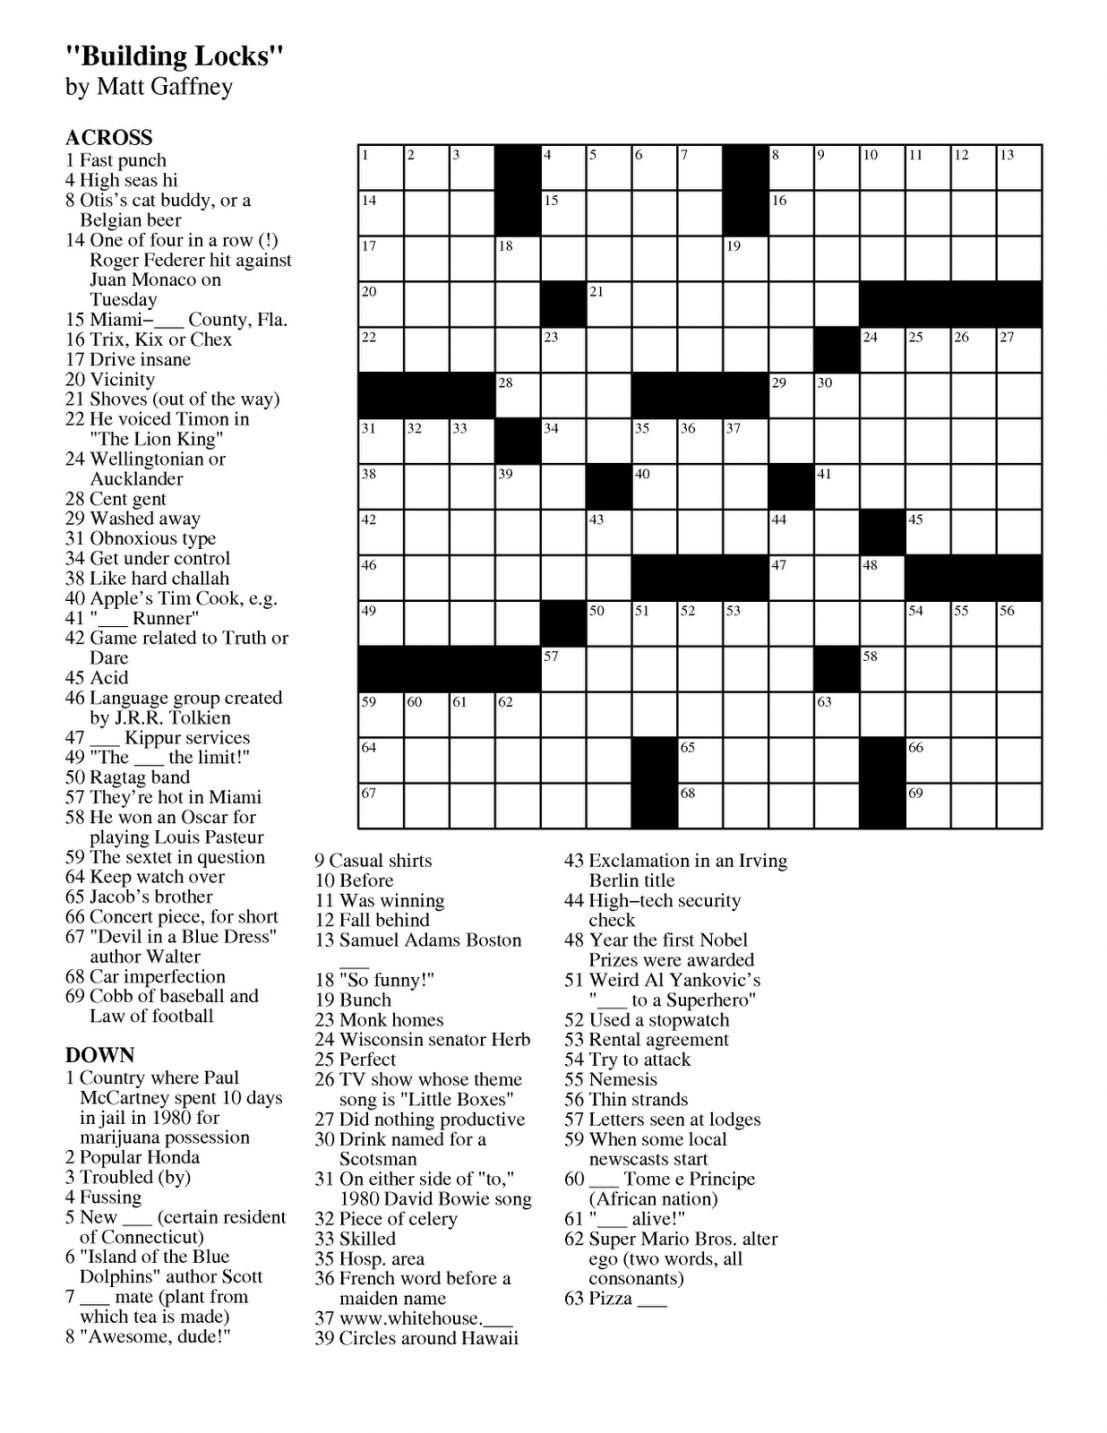 Tools Atozteacherstuff Freetable Crossword Puzzle Maker Easy - Free - Build A Crossword Puzzle Free Printable